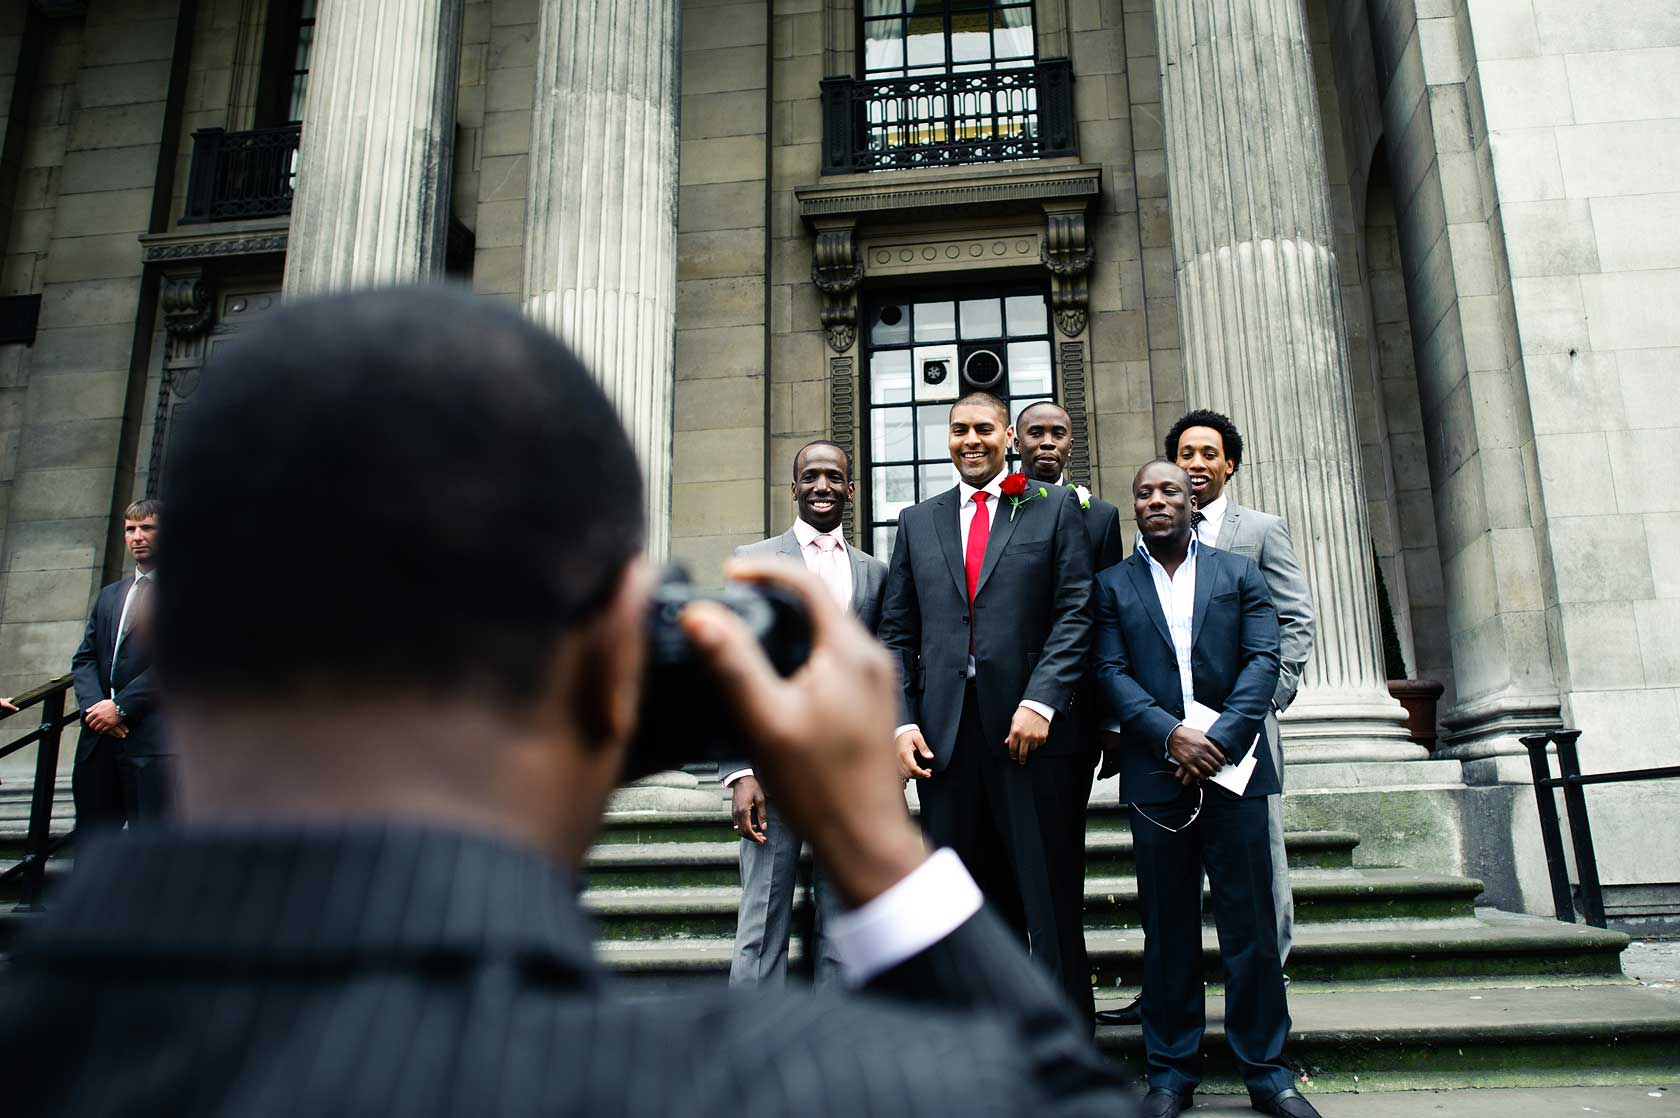 Reportage Wedding Photography at Old Marylebone Town Hall